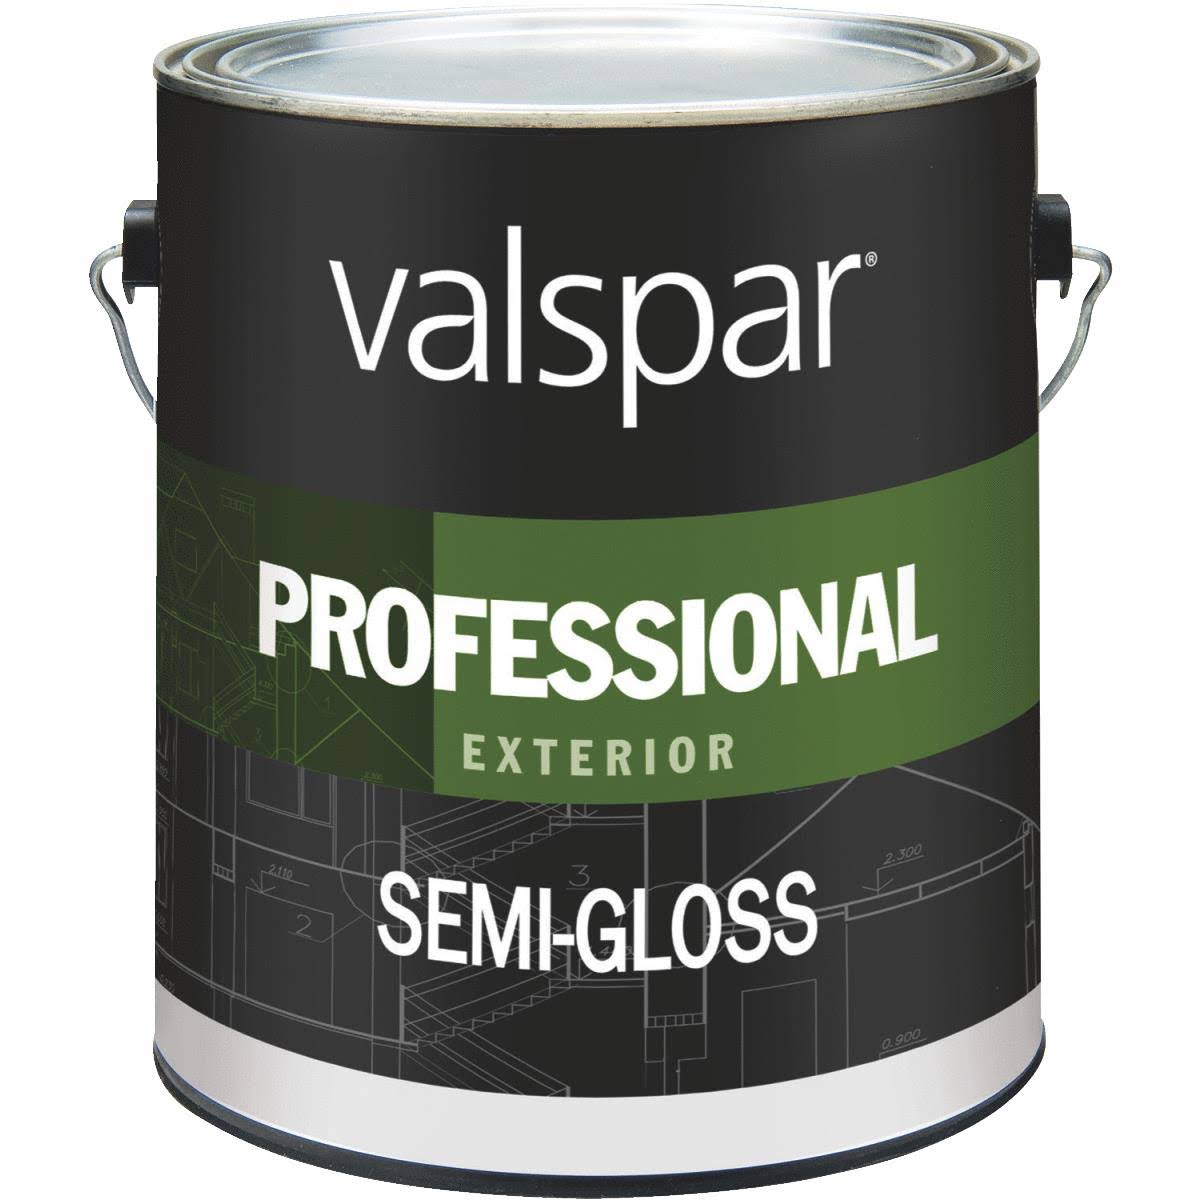 Valspar Professional Semi-Gloss Exterior Latex Paint